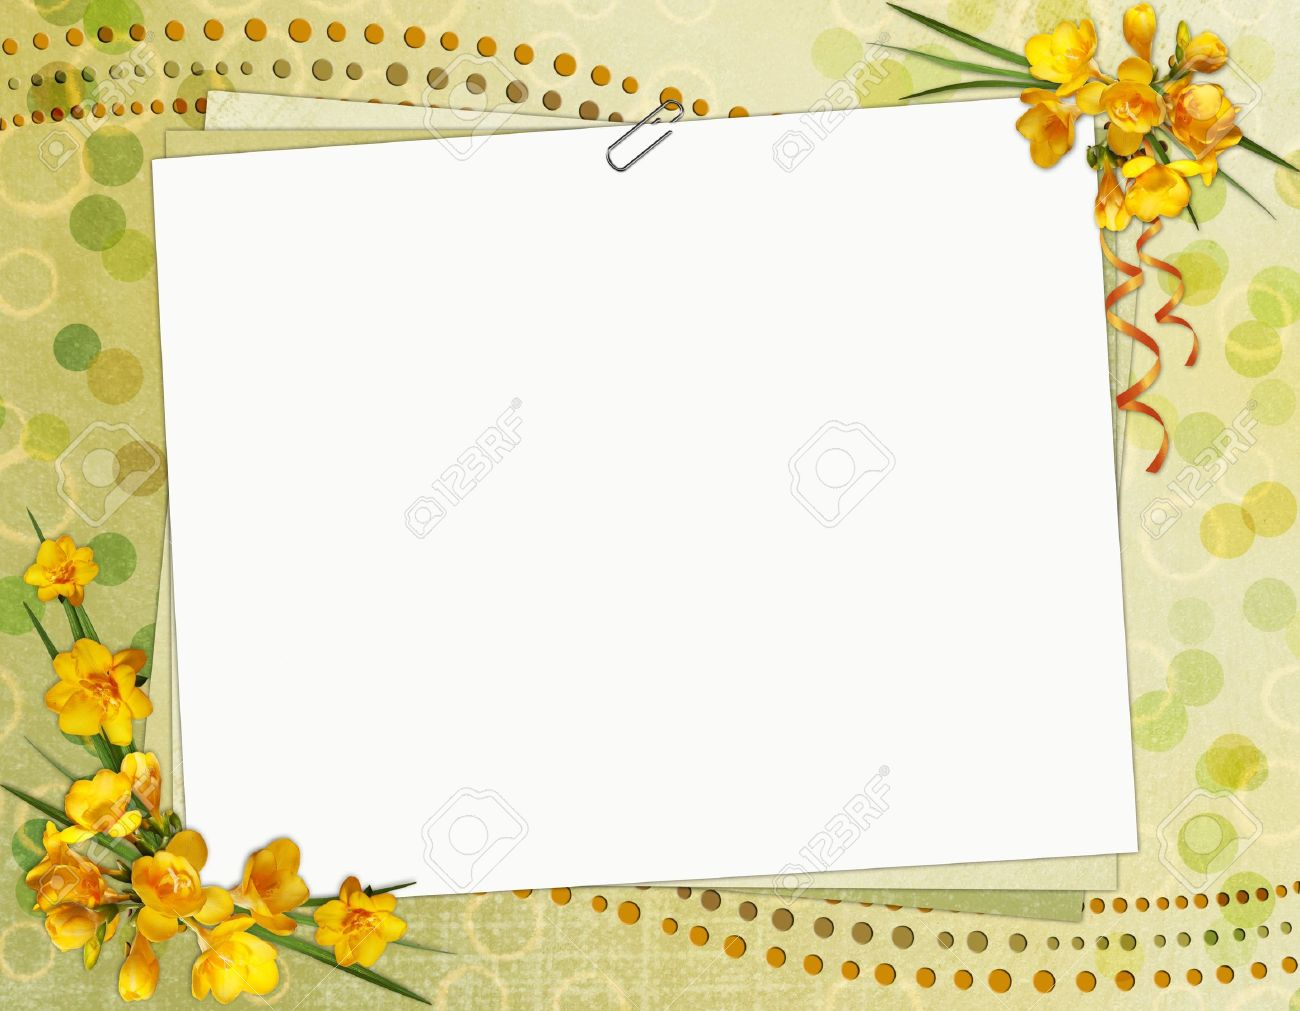 borders for birthday greeting cards ; 6825517-greeting-card